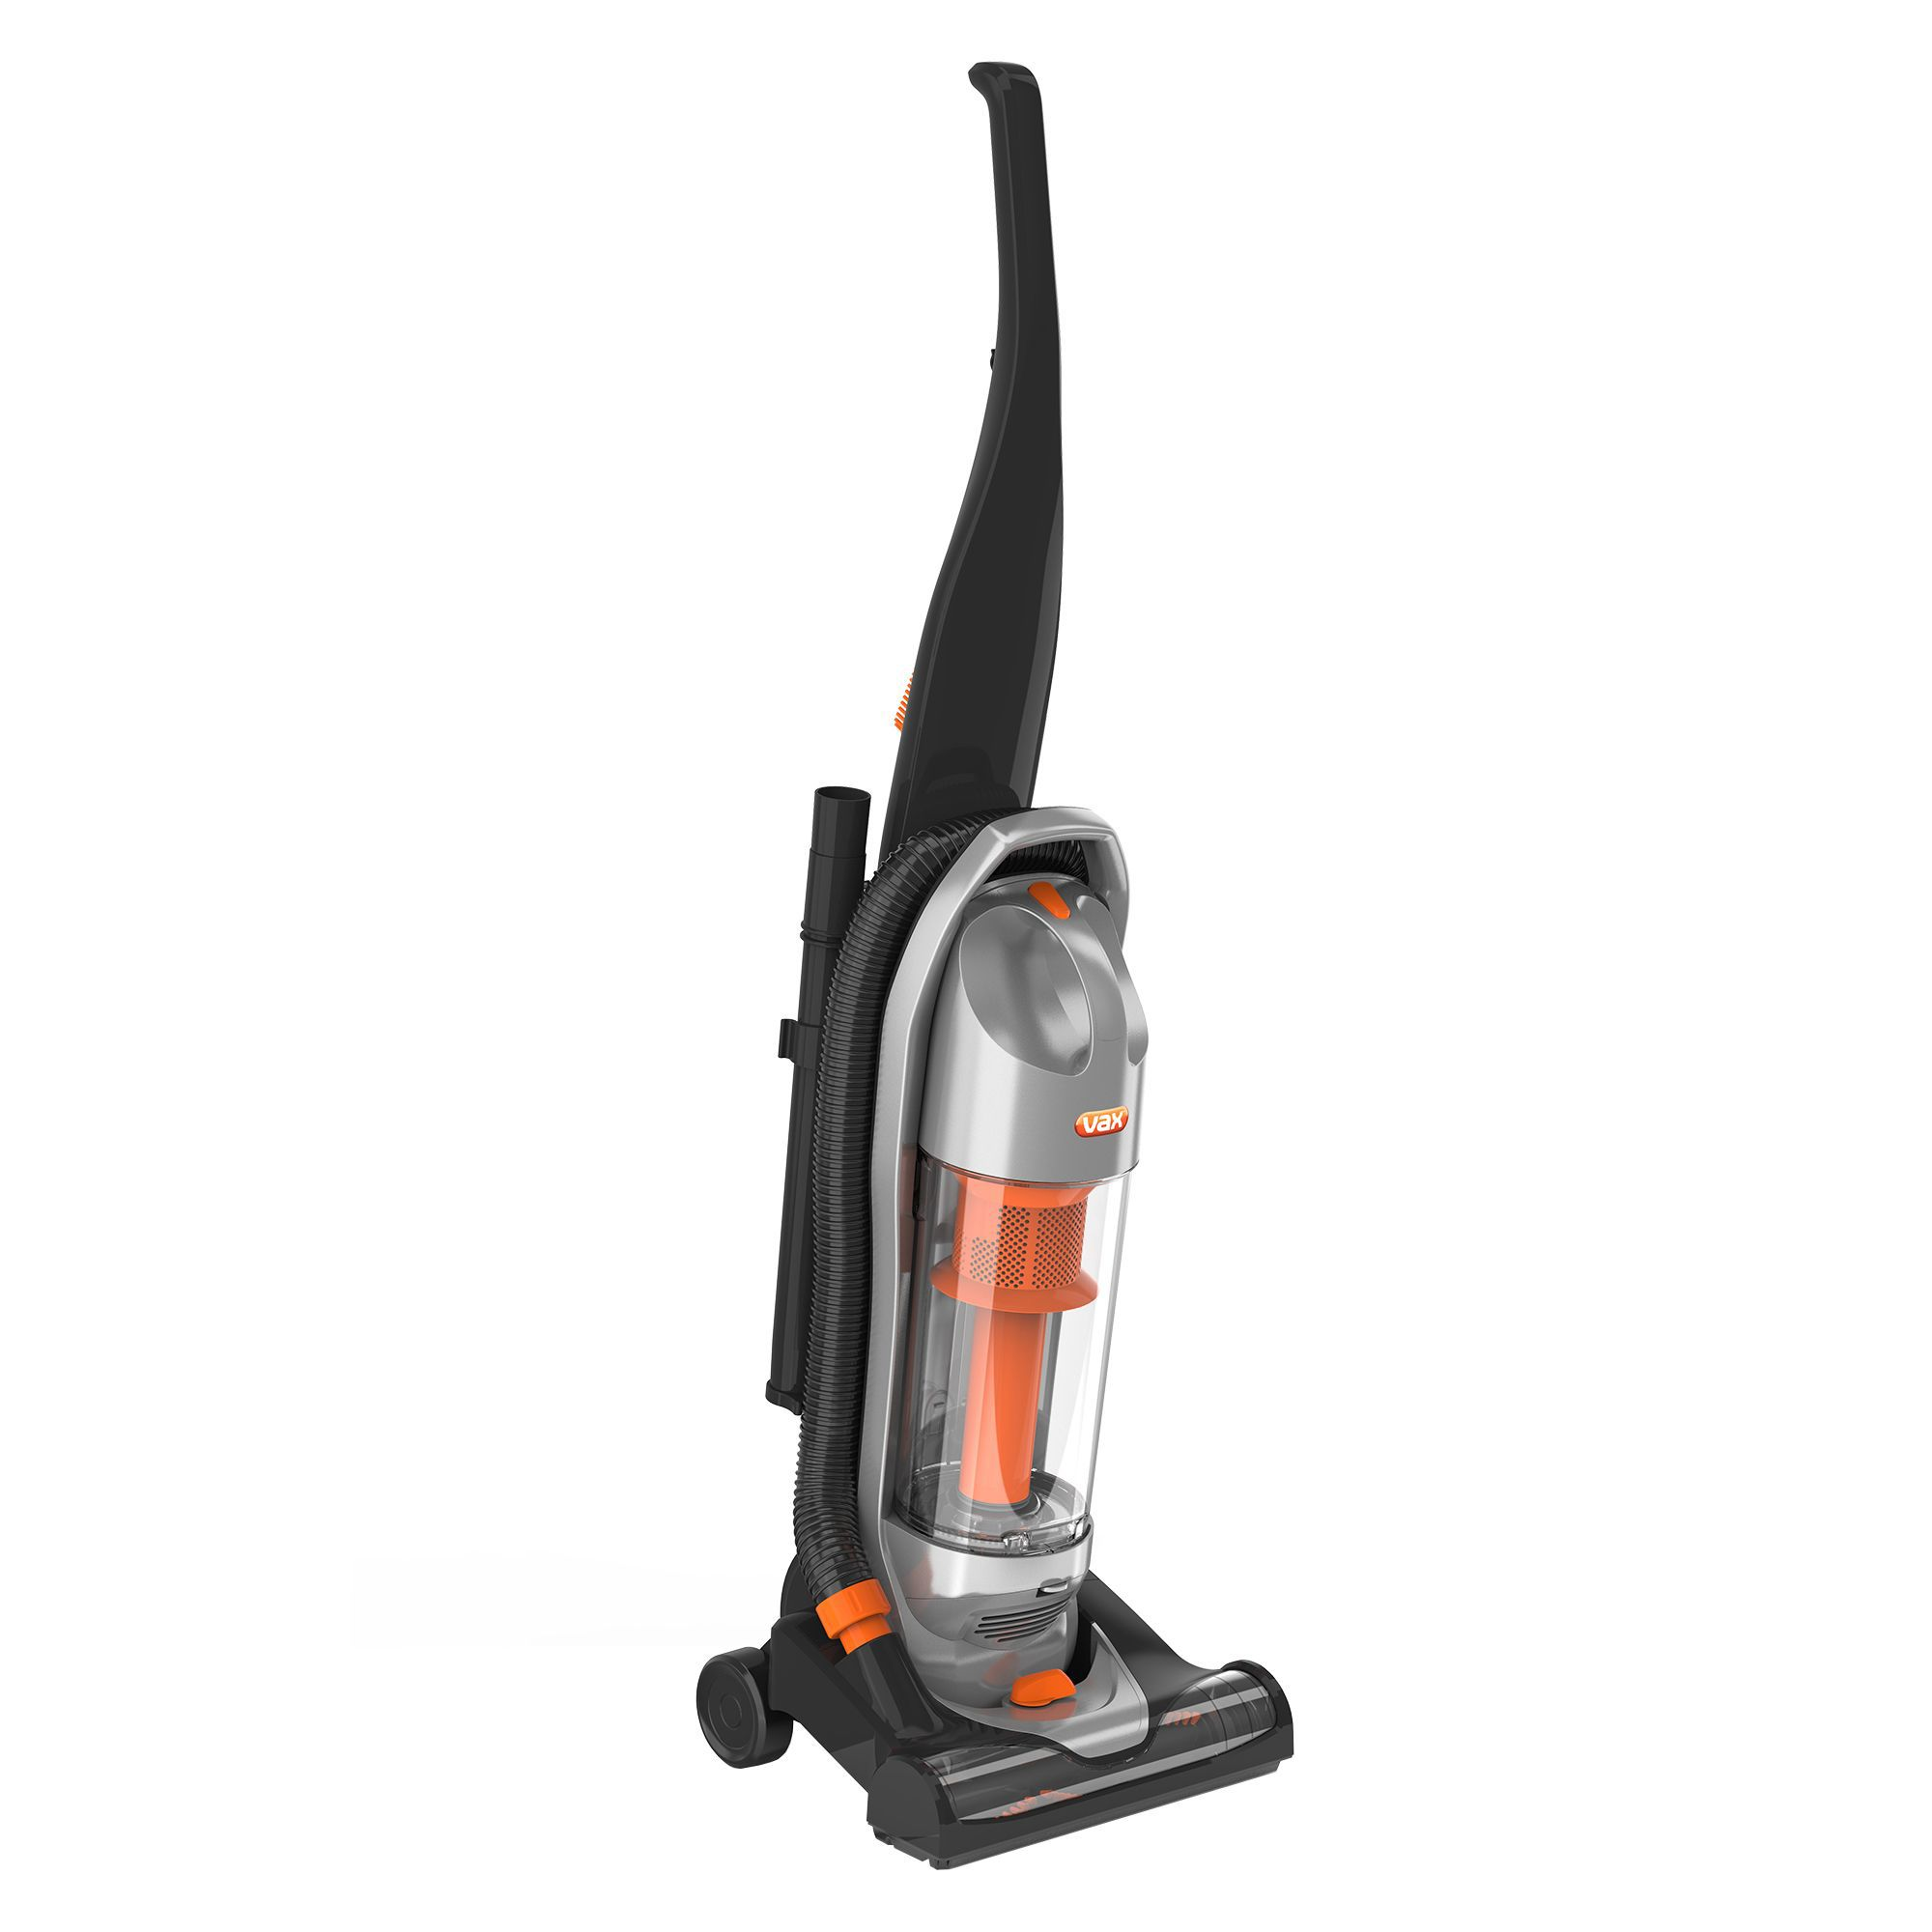 Vax Power Compact Corded Bagless Vacuum Cleaner U85-pc-be